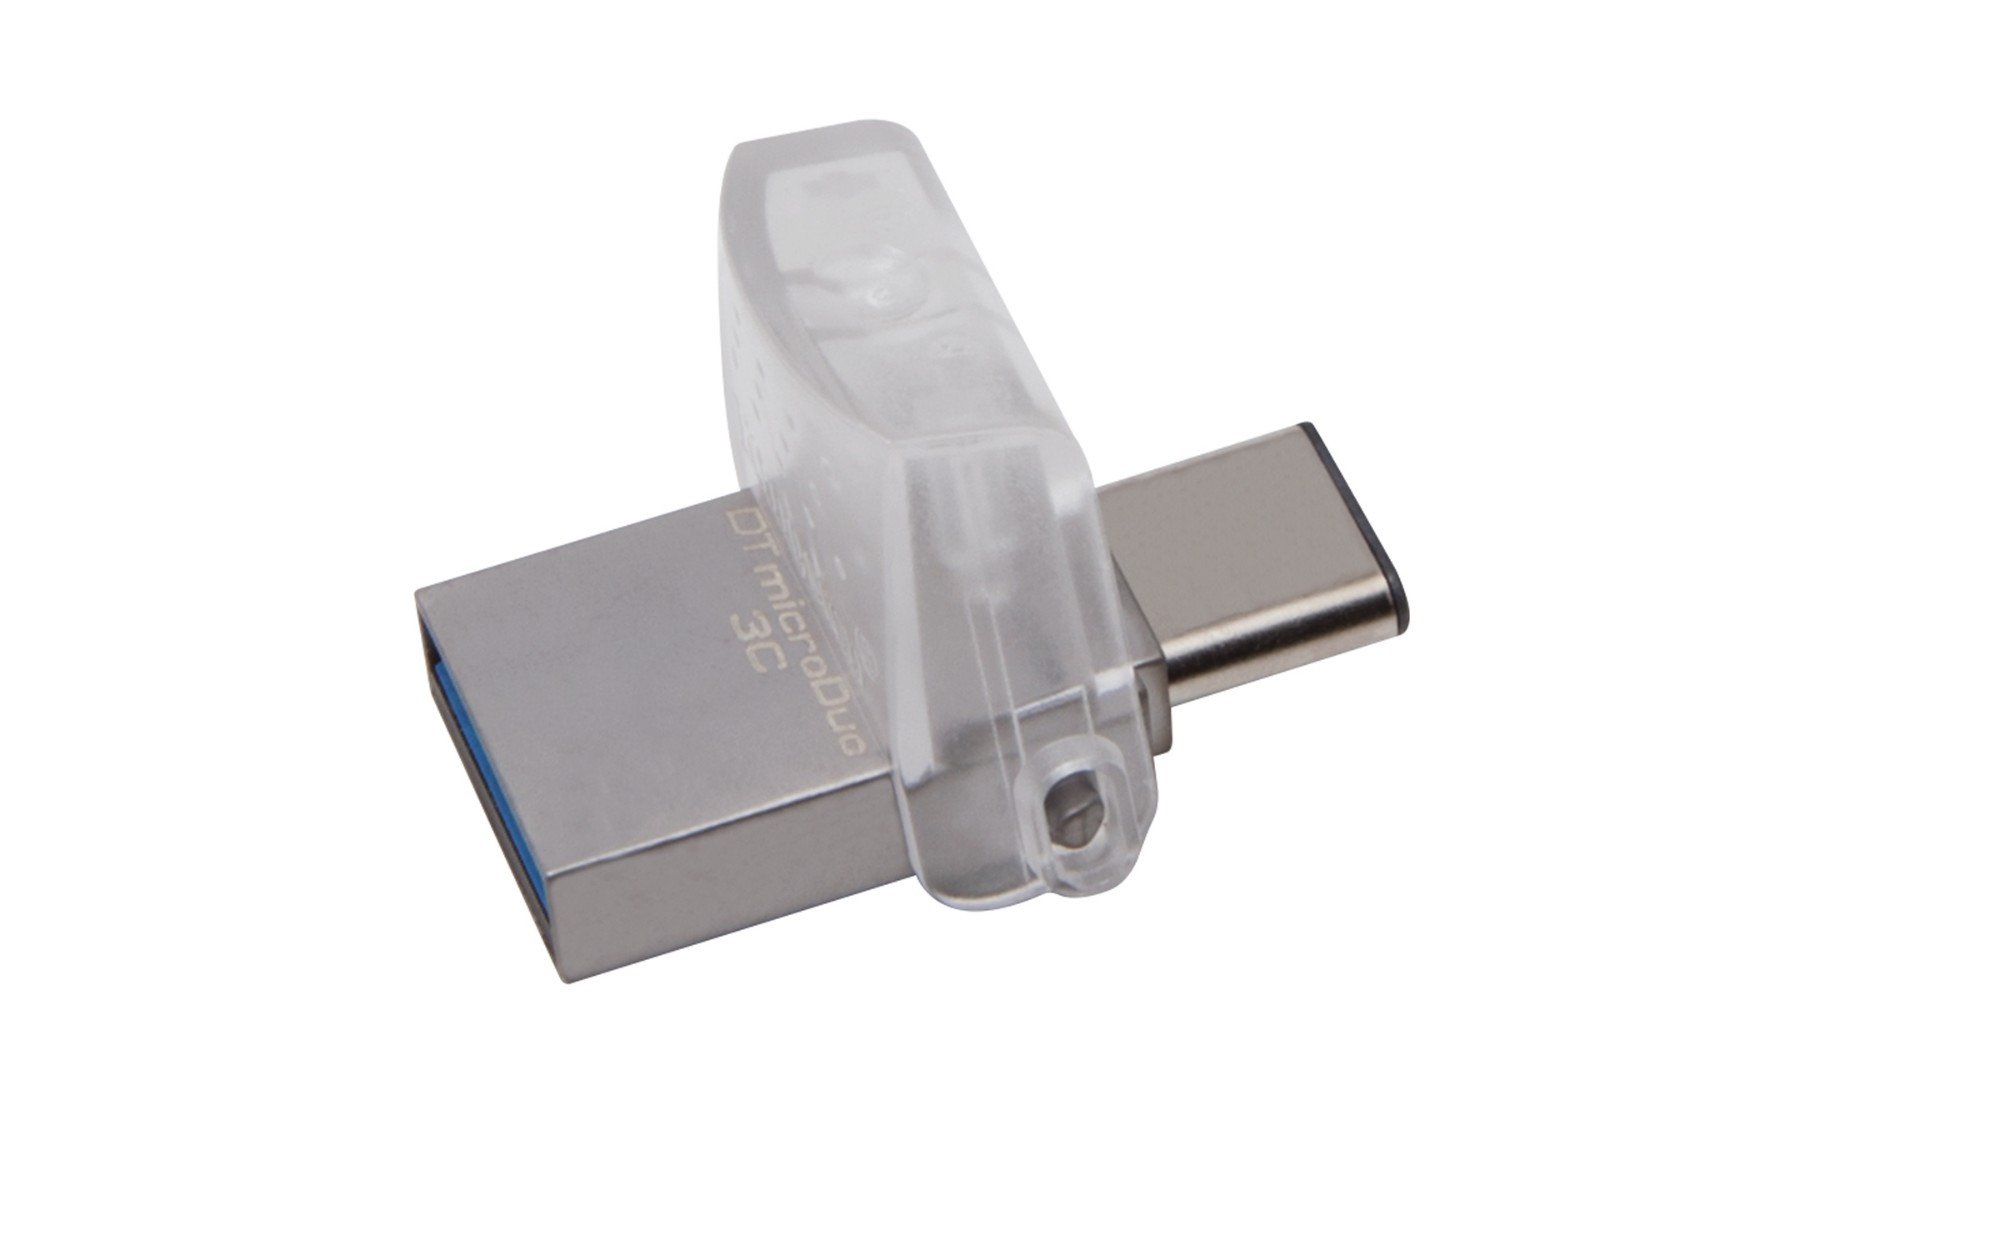 Kingston Technology DataTraveler microDuo 3C 128GB unidad flash USB USB Type-A / USB Type-C 3.2 Gen 1 (3.1 Gen 1) Plata